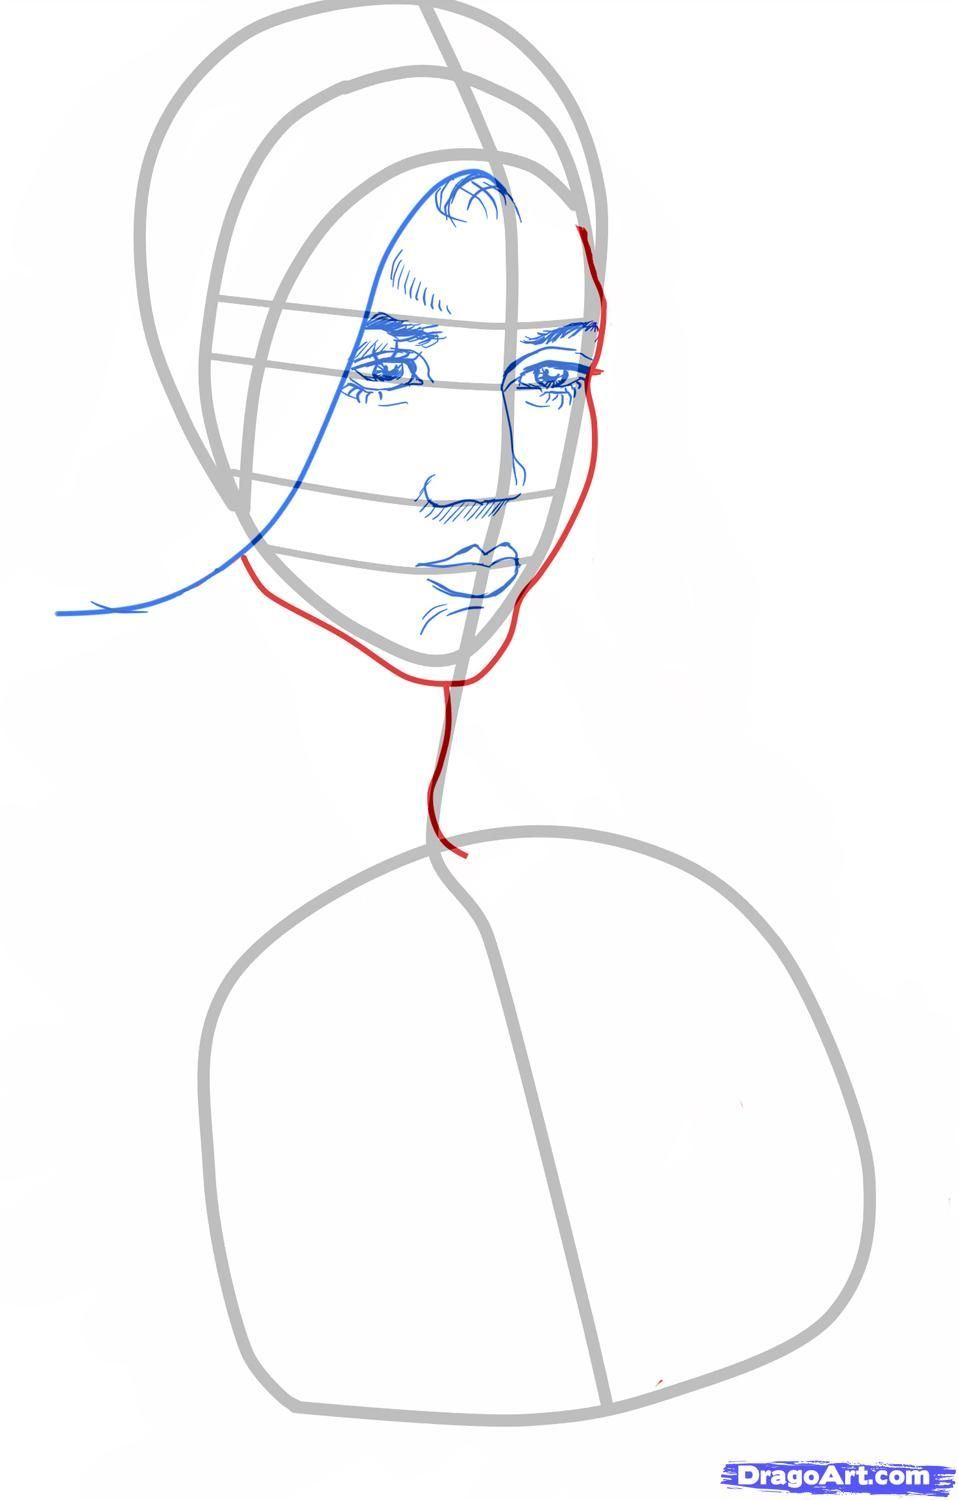 How to draw Stephane Salvatore's portrait with a pencil step by step 4